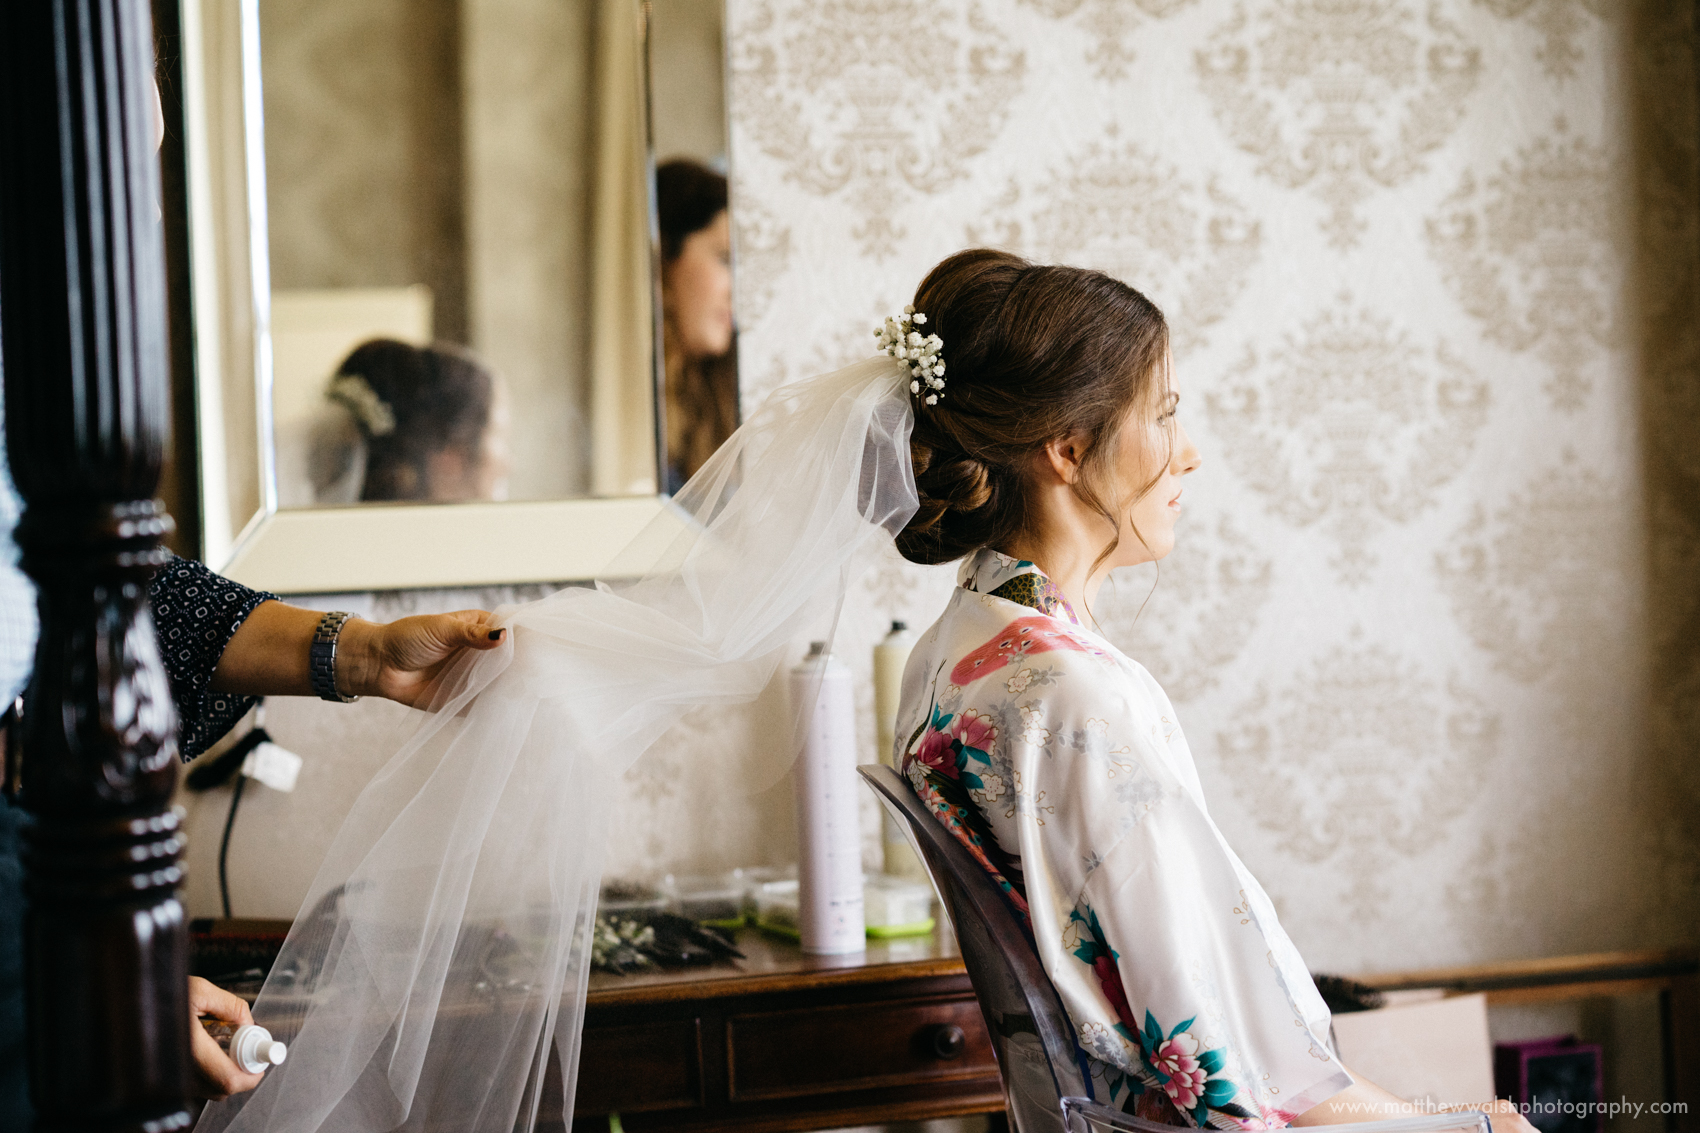 The bride and the hair dresser make the final preparations